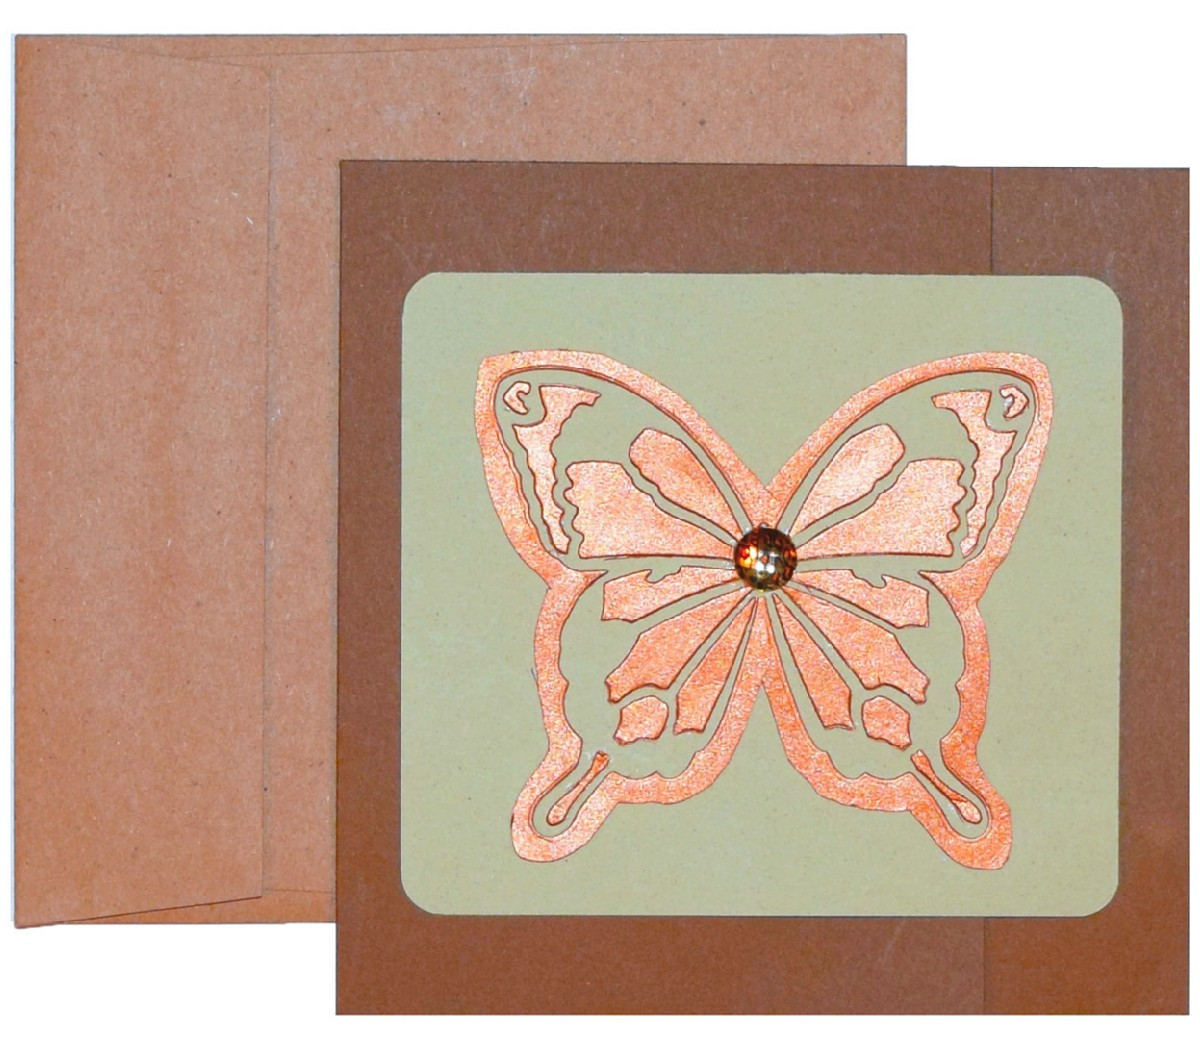 shimmer and recycled paper cocooned to create this beautiful butterfly card - Paper Papers Copper Butterfly 3 also web - Shimmer and Recycled paper cocooned to create this beautiful butterfly card